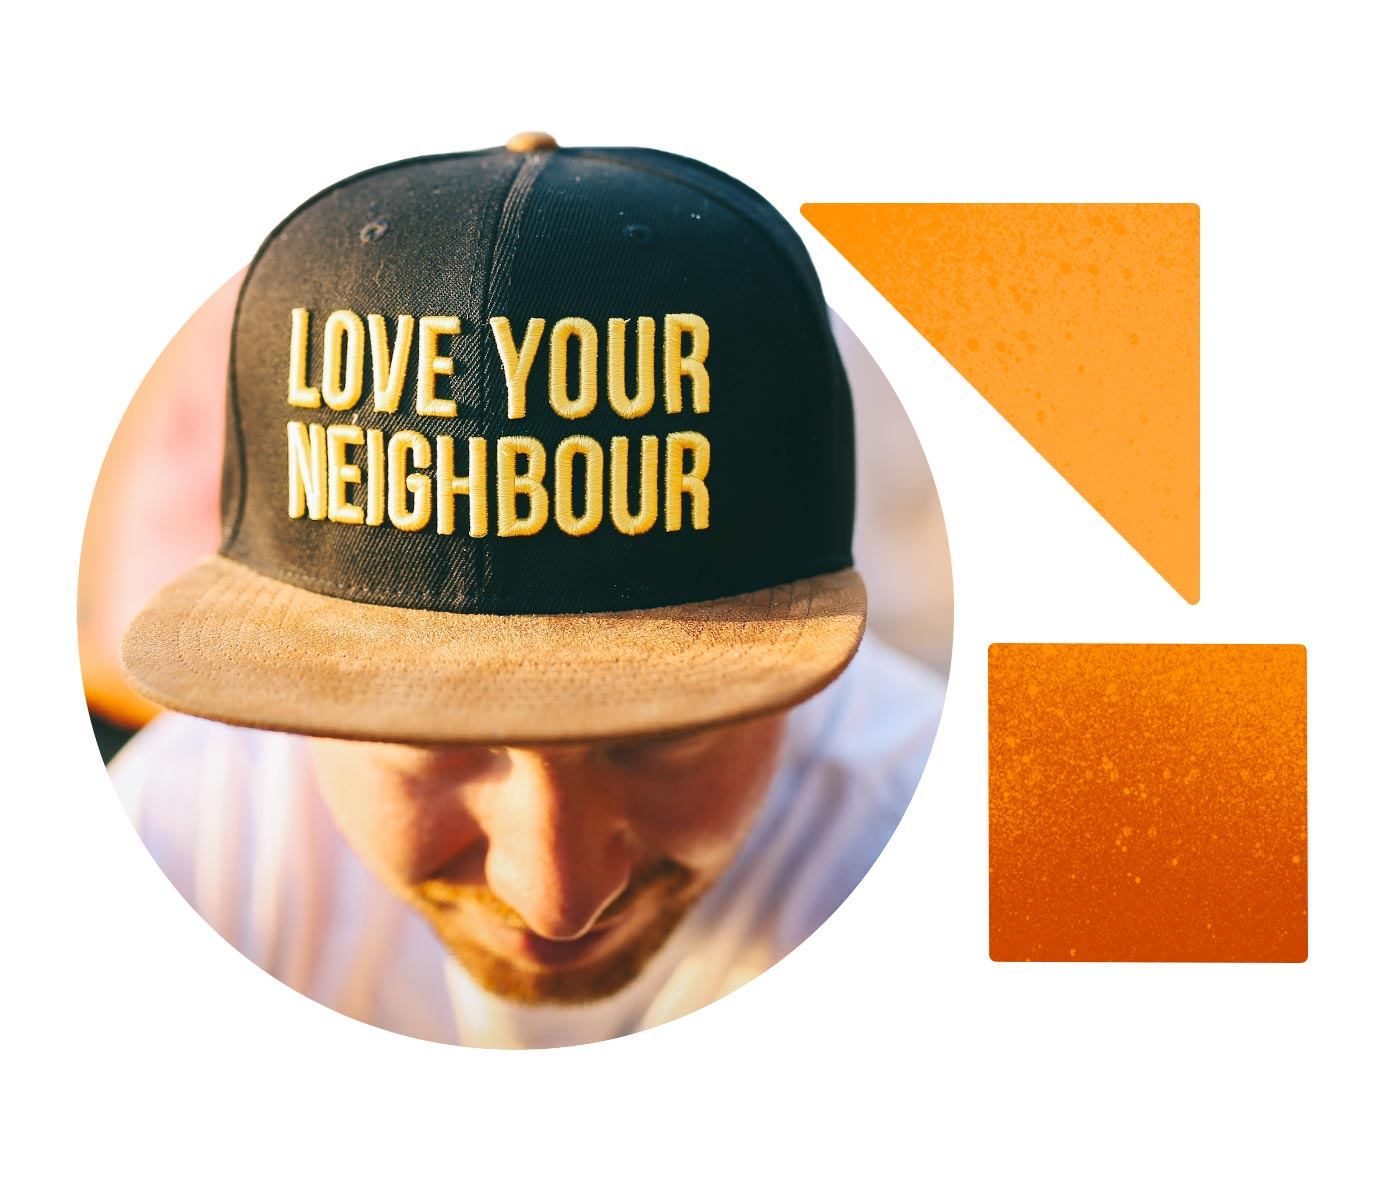 A man leans forward to show the letters on his baseball cap that read LOVE YOUR NEIGHBOUR.